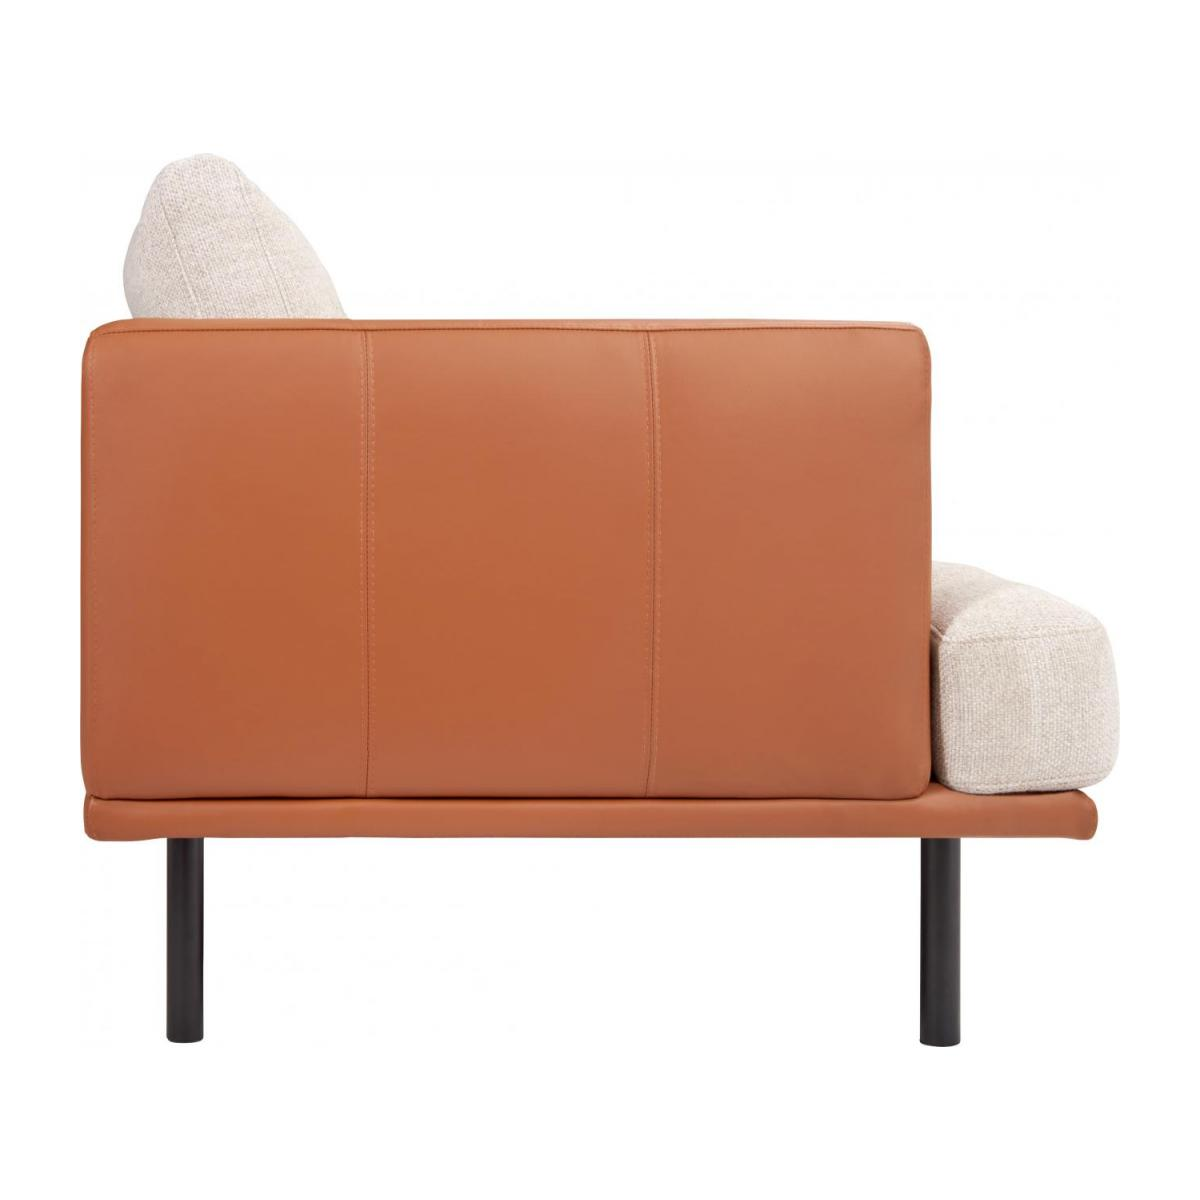 2 seater sofa in Fasoli fabric, snow white with base and armrests in brown leather n°5